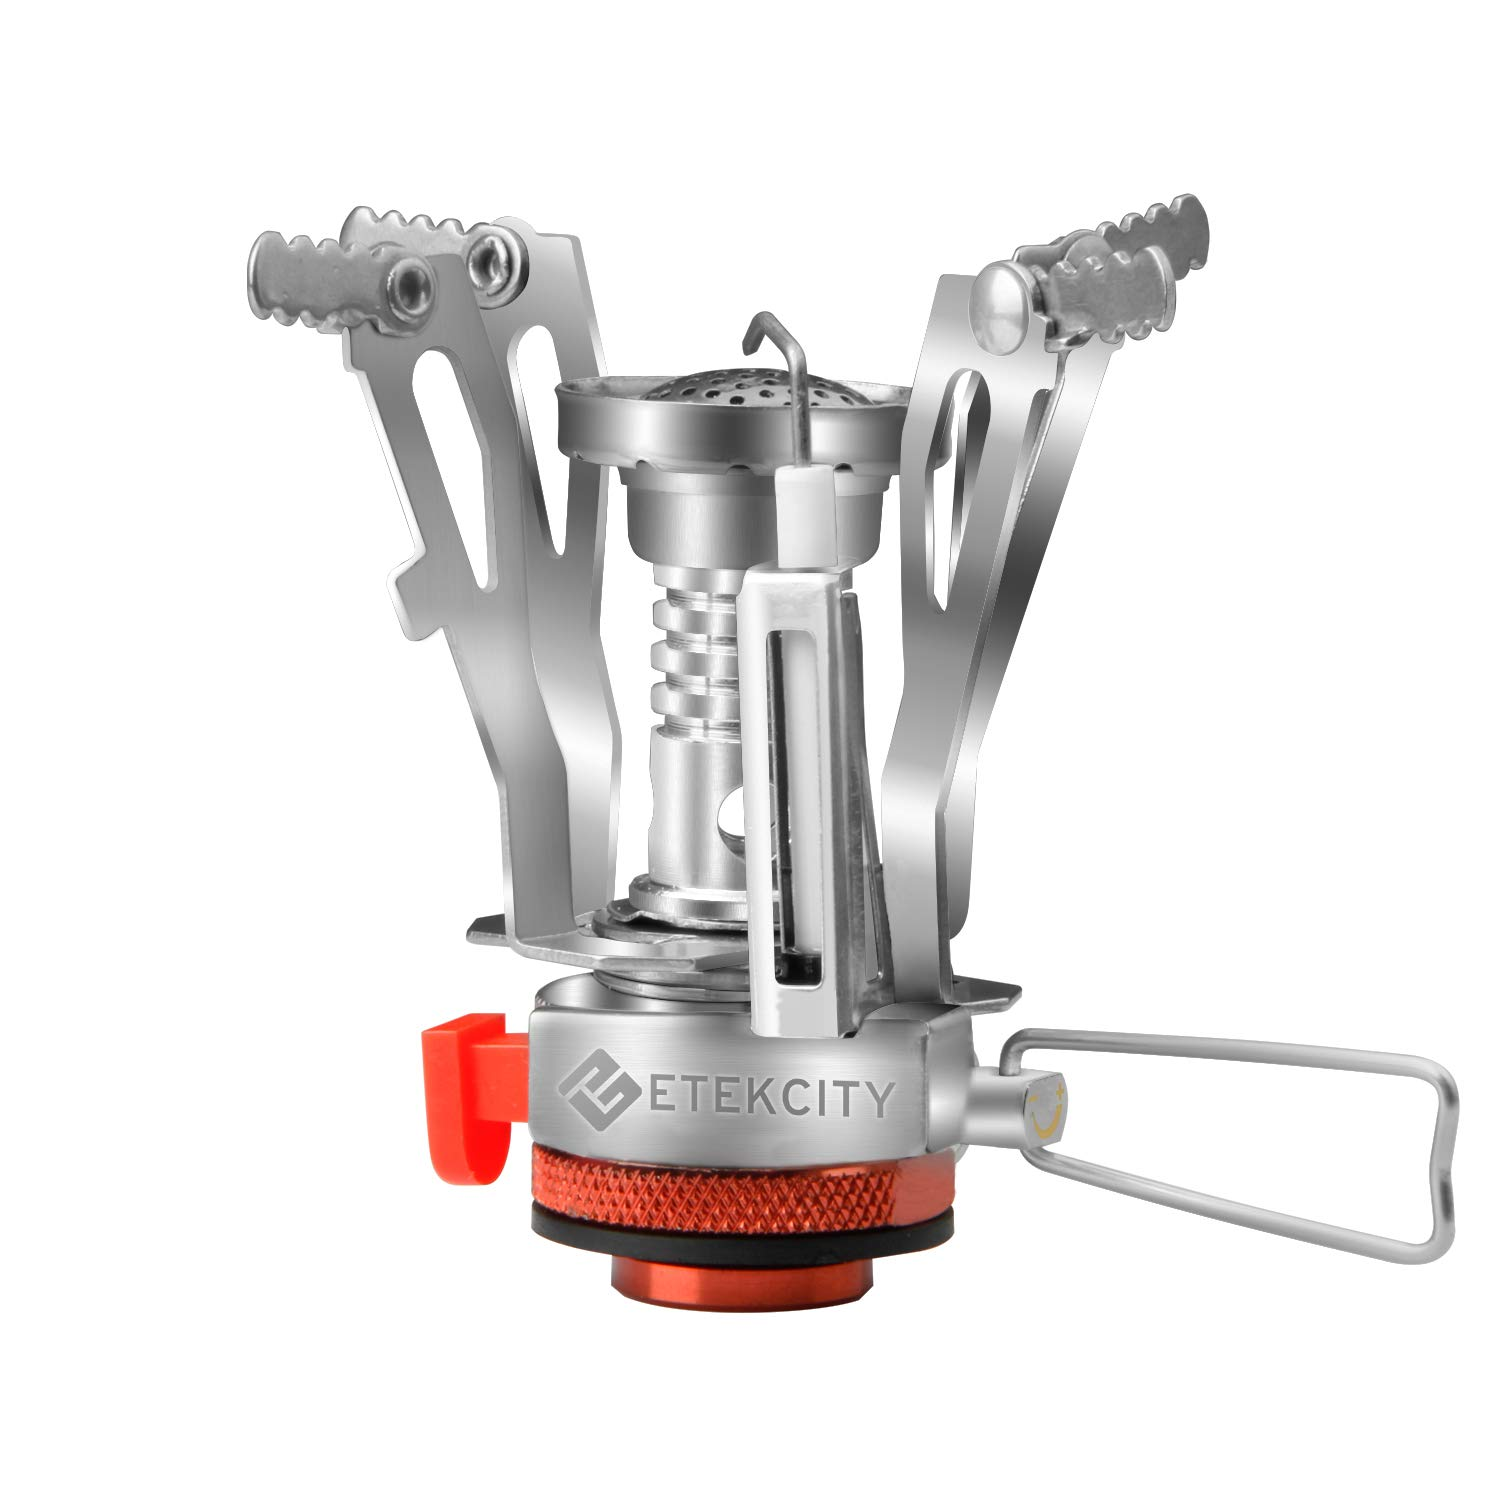 Etekcity Ultralight Camp Stove